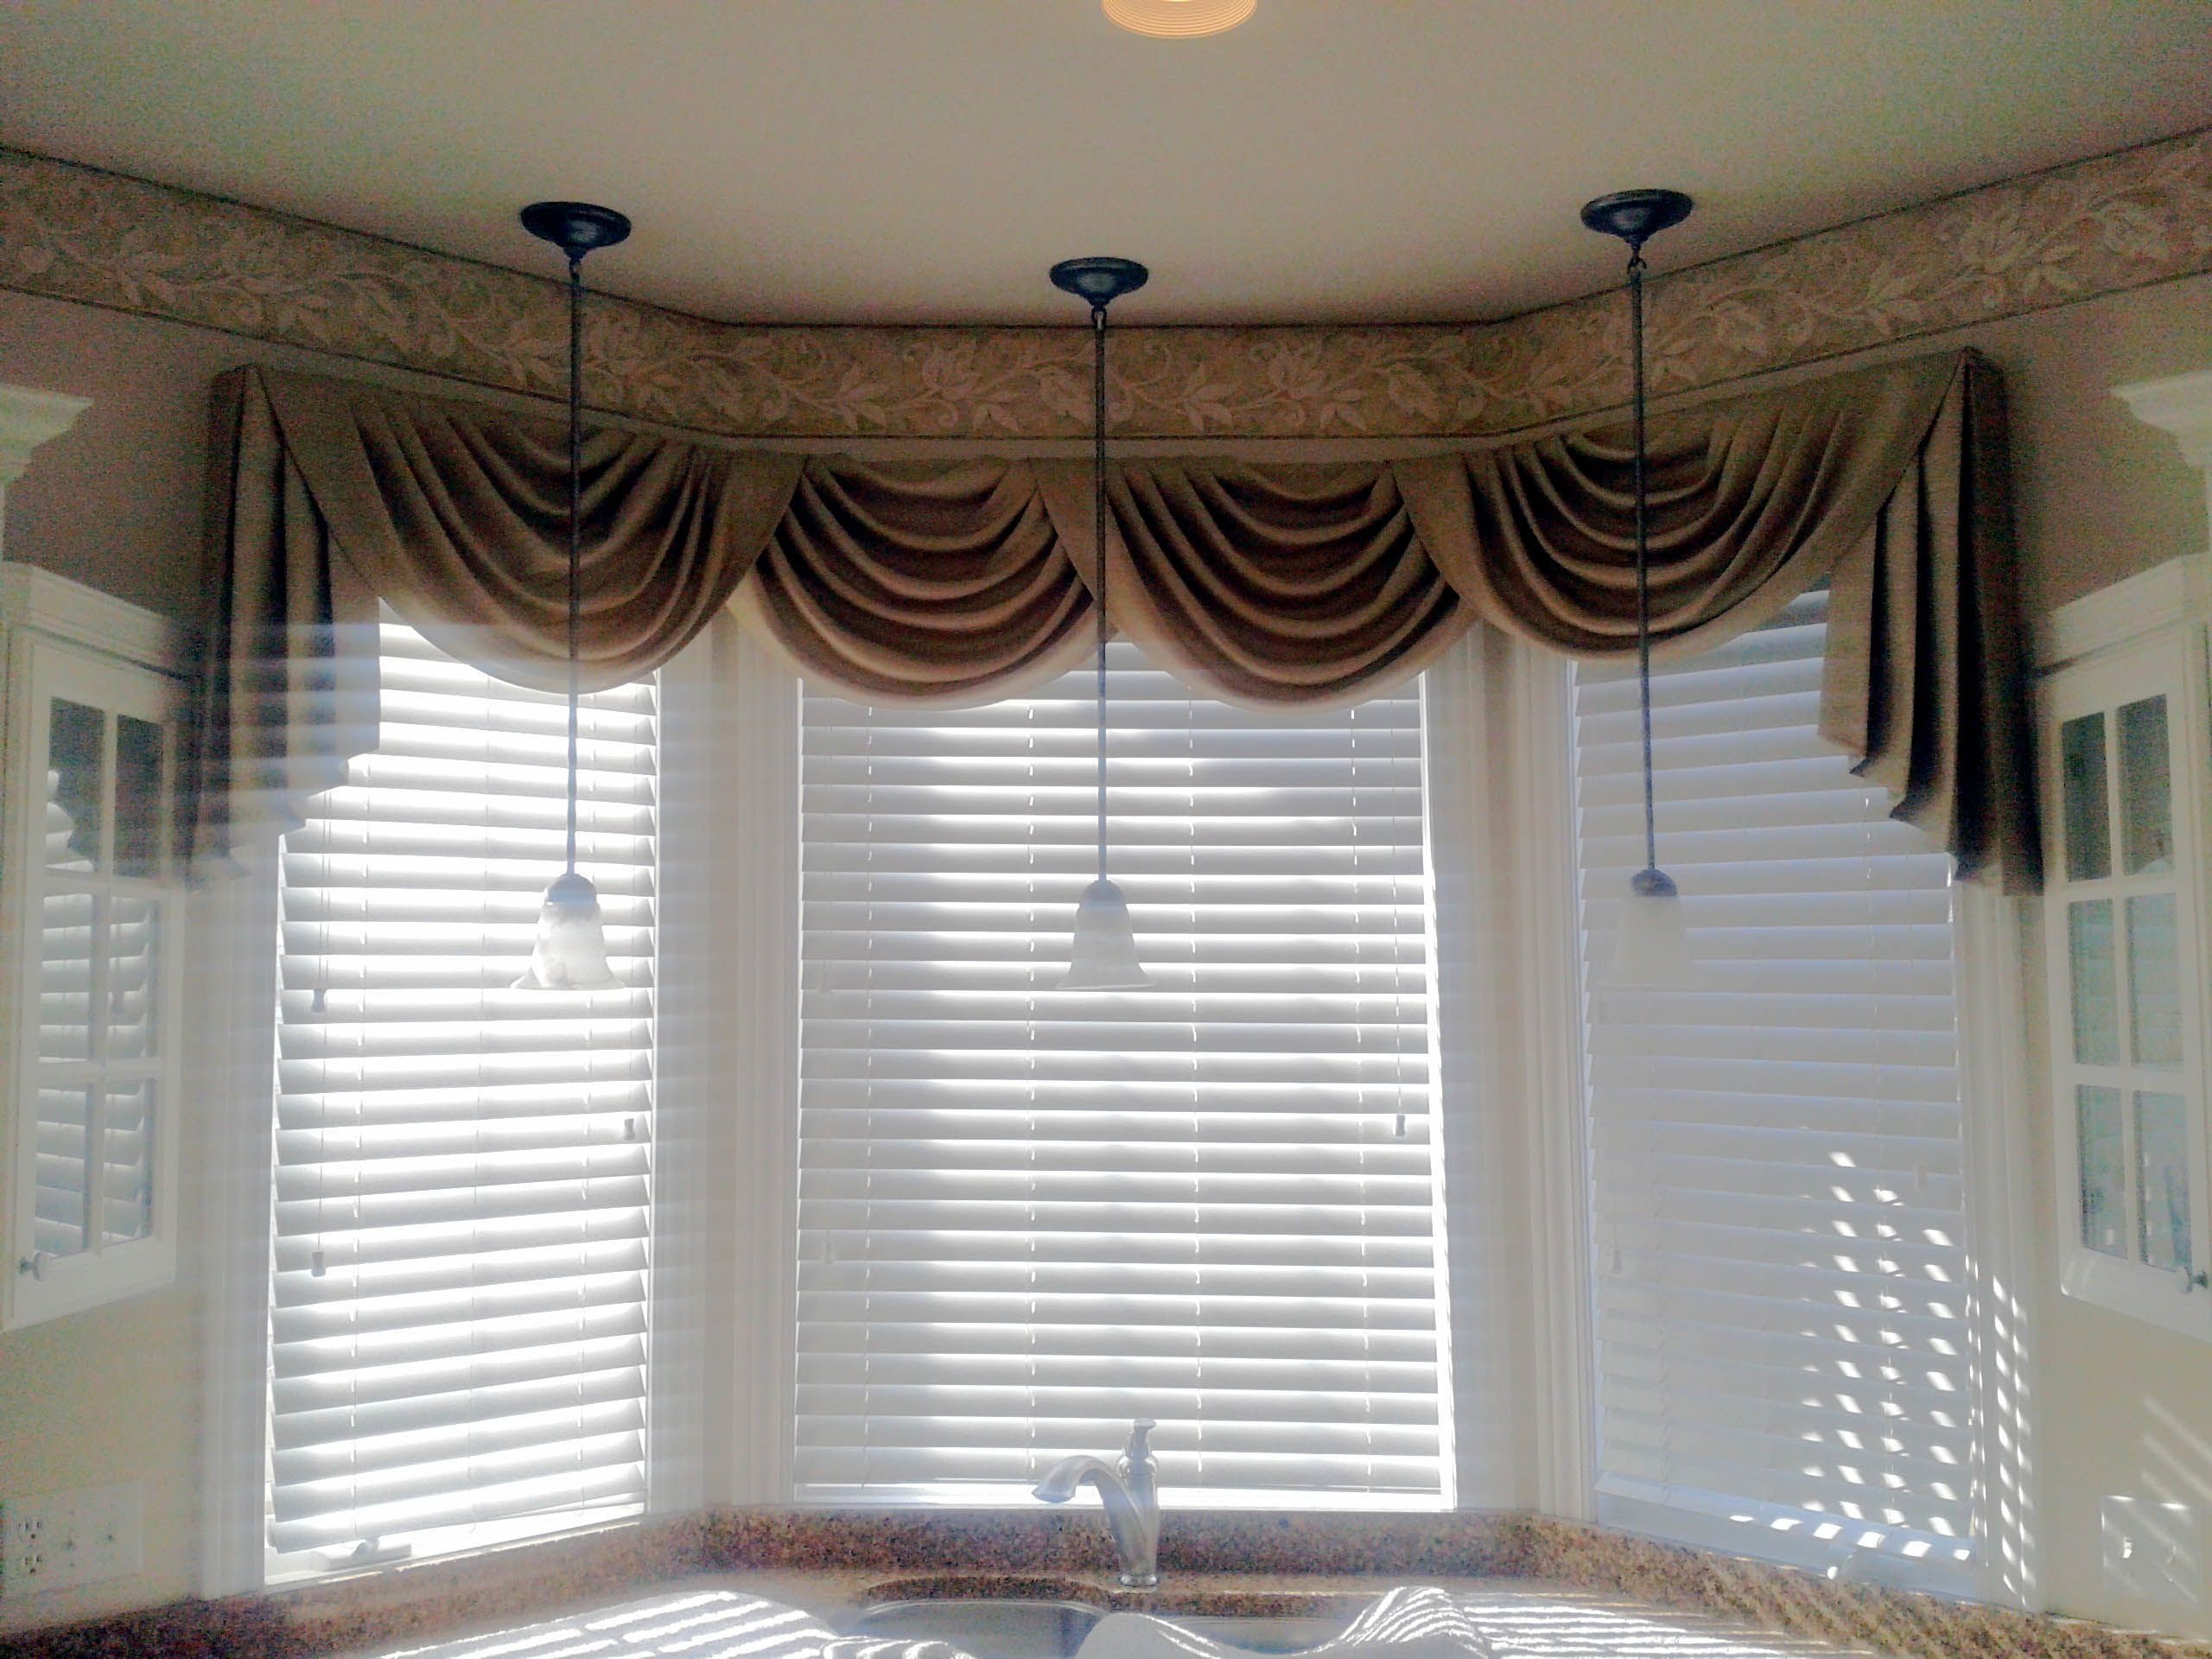 without behind blinds curtains rod hang curtain likable how sheer a panels hanging over to